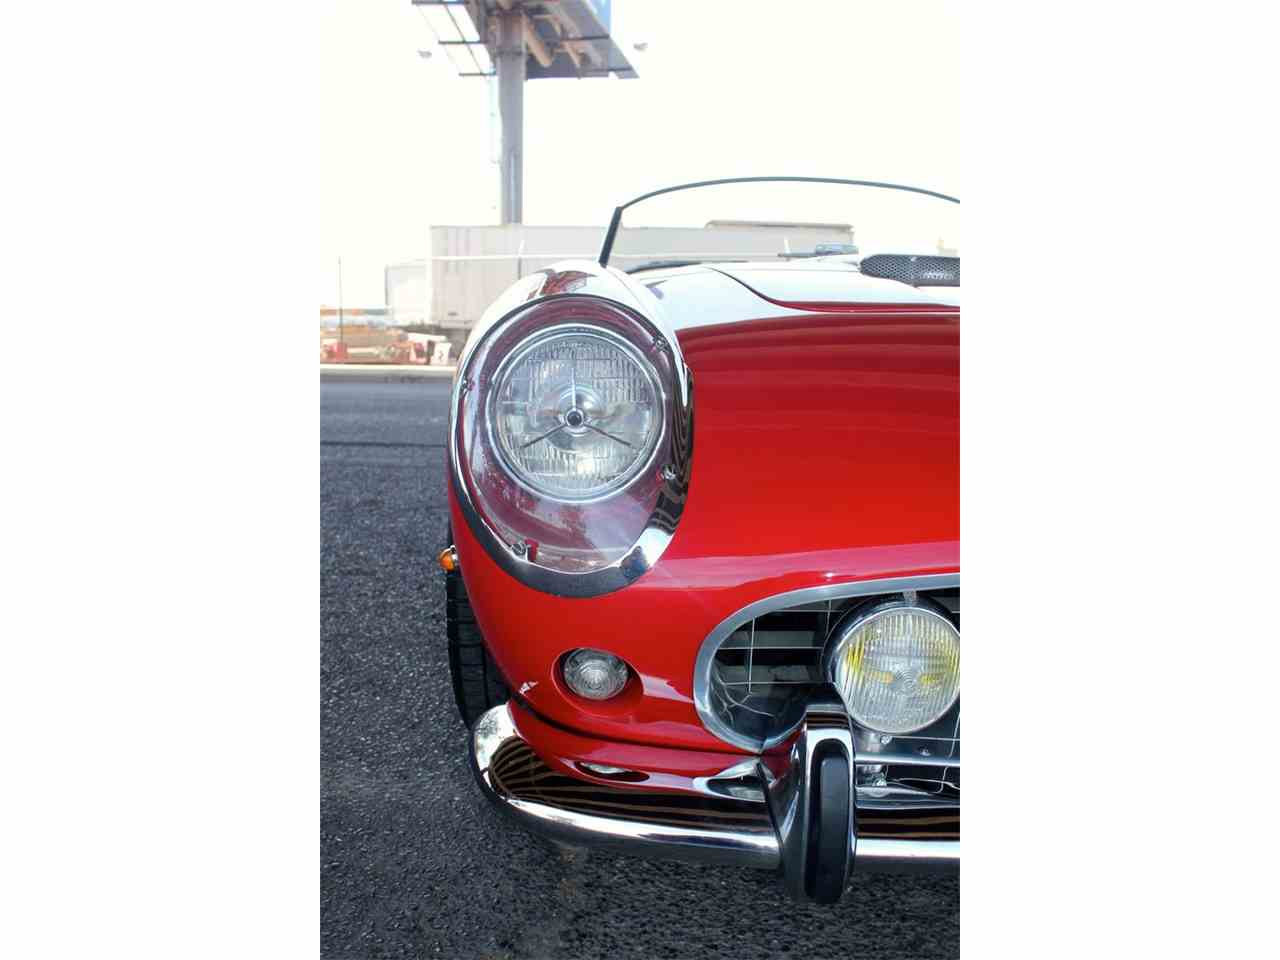 Large Picture of Classic '63 250 GTE California Spyder Offered by EMG - J2E5